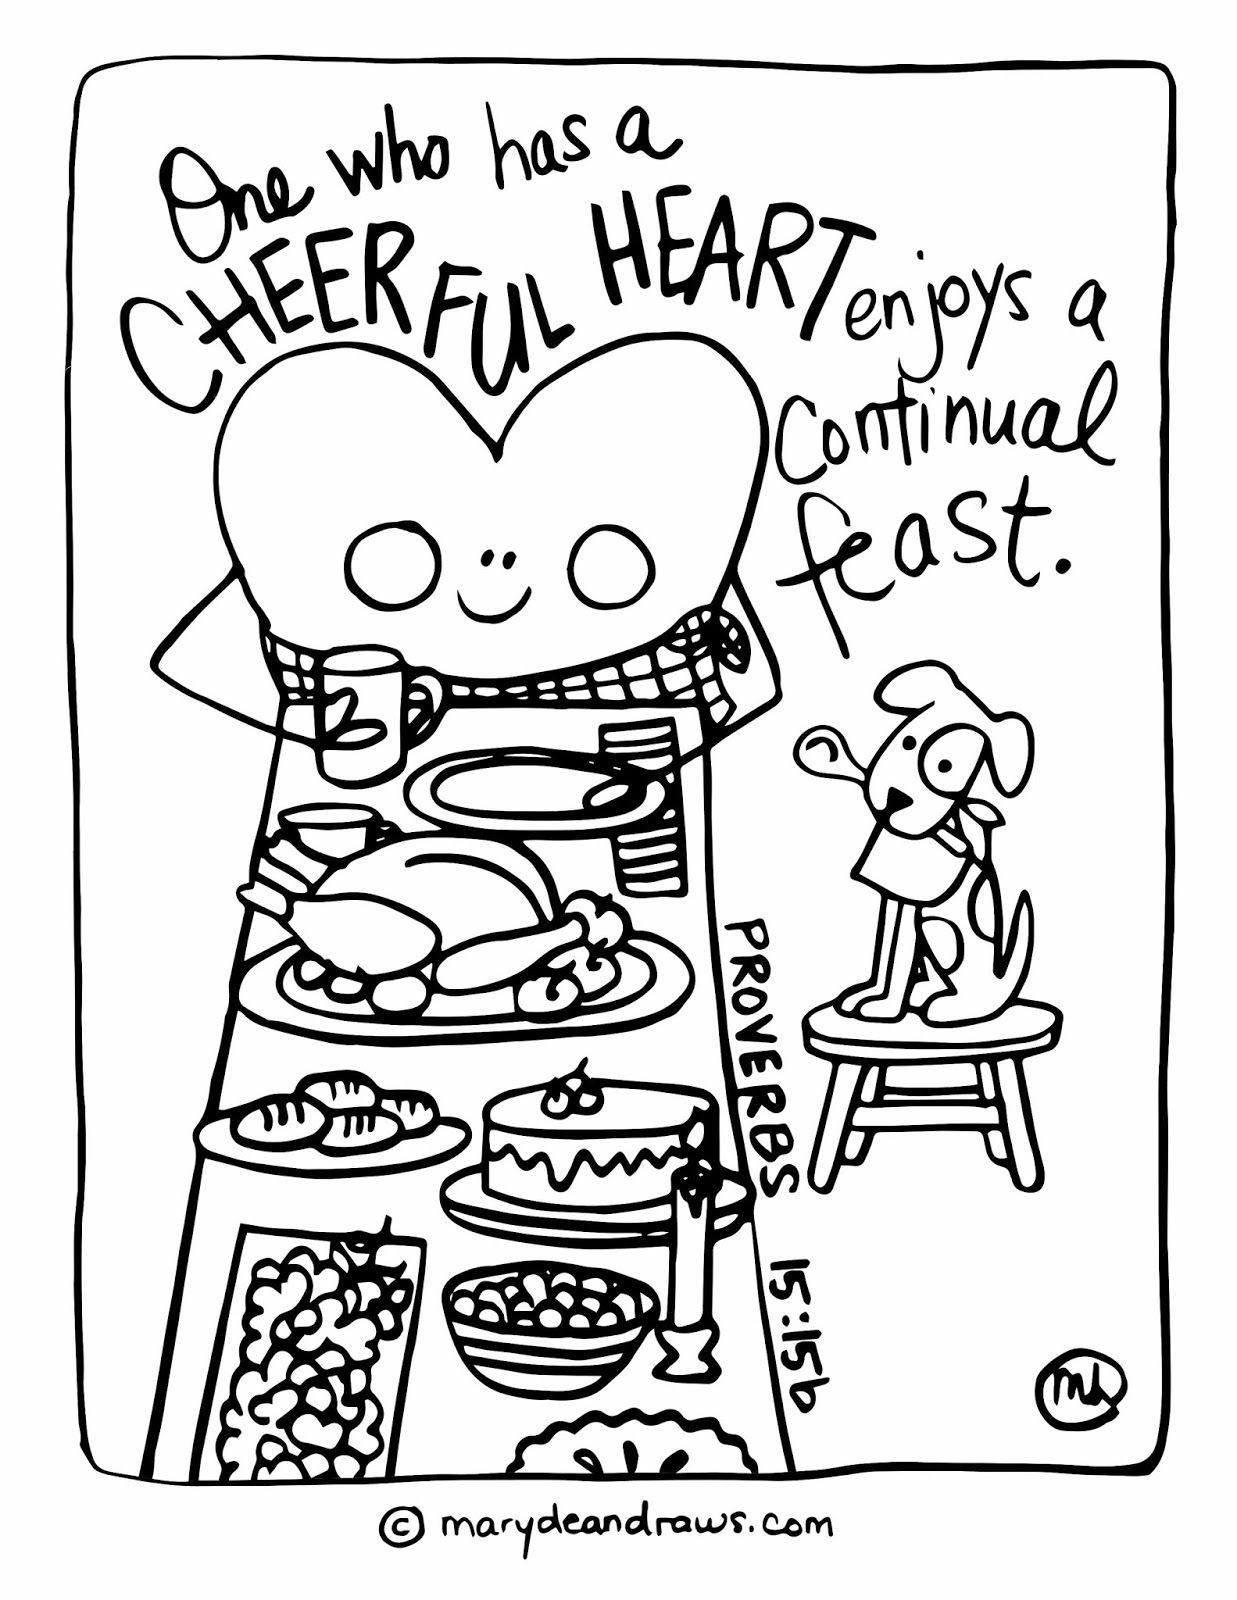 Proverbs 15:15 Scripture Bible verse coloring page Cheerful Heart ...